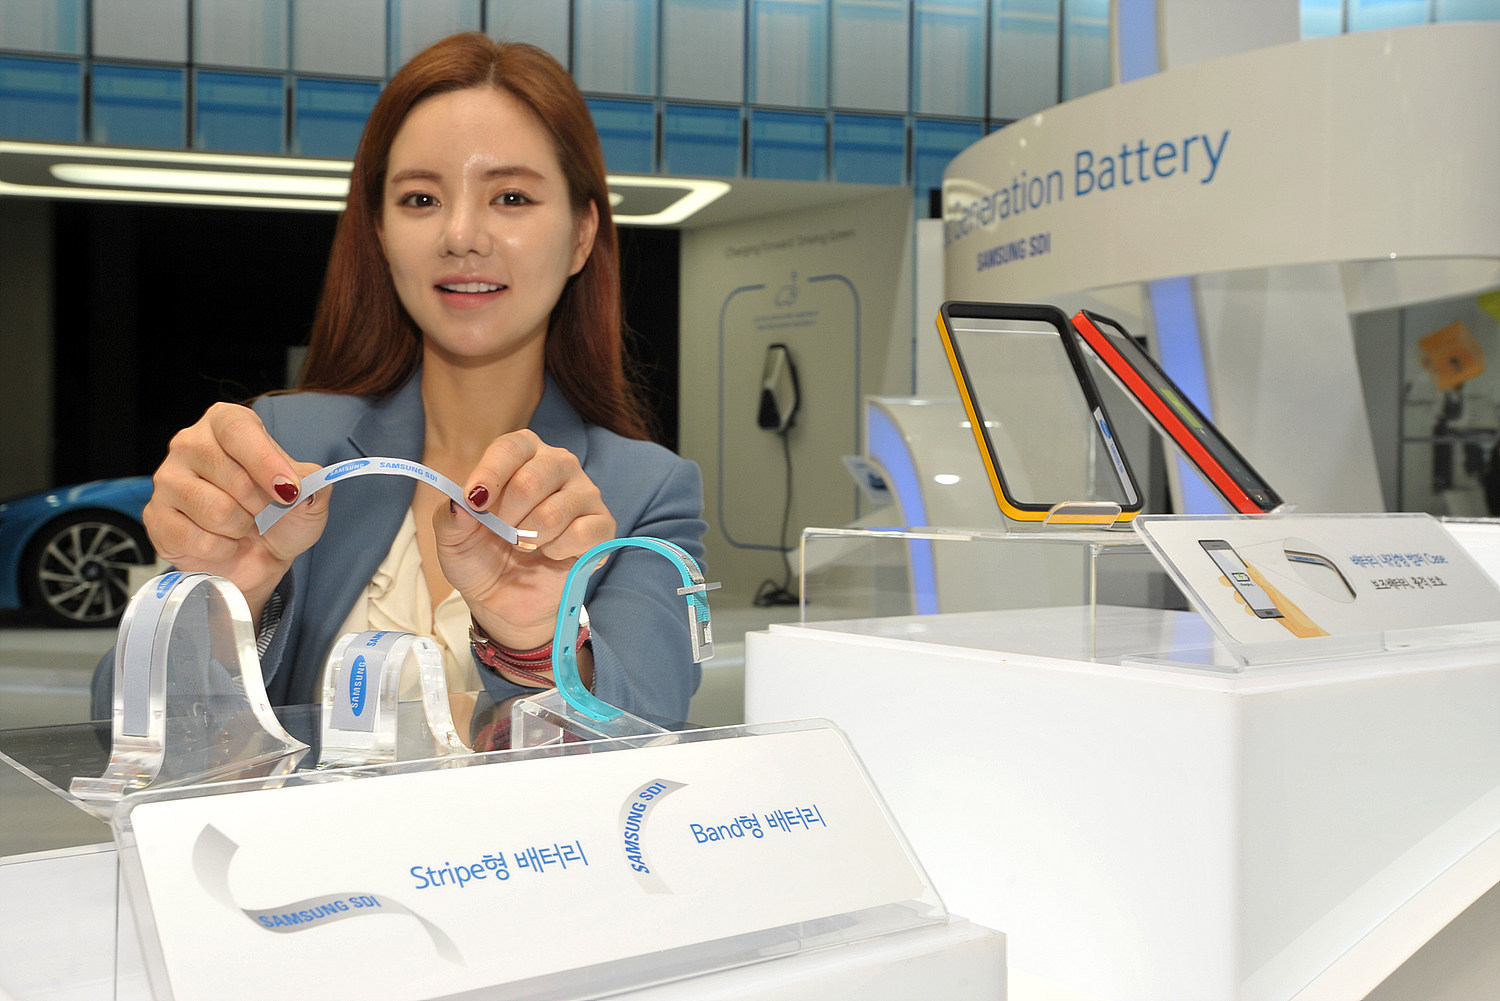 Samsung SDI unveiled Stripe and Band batteries at InterBattery 2015